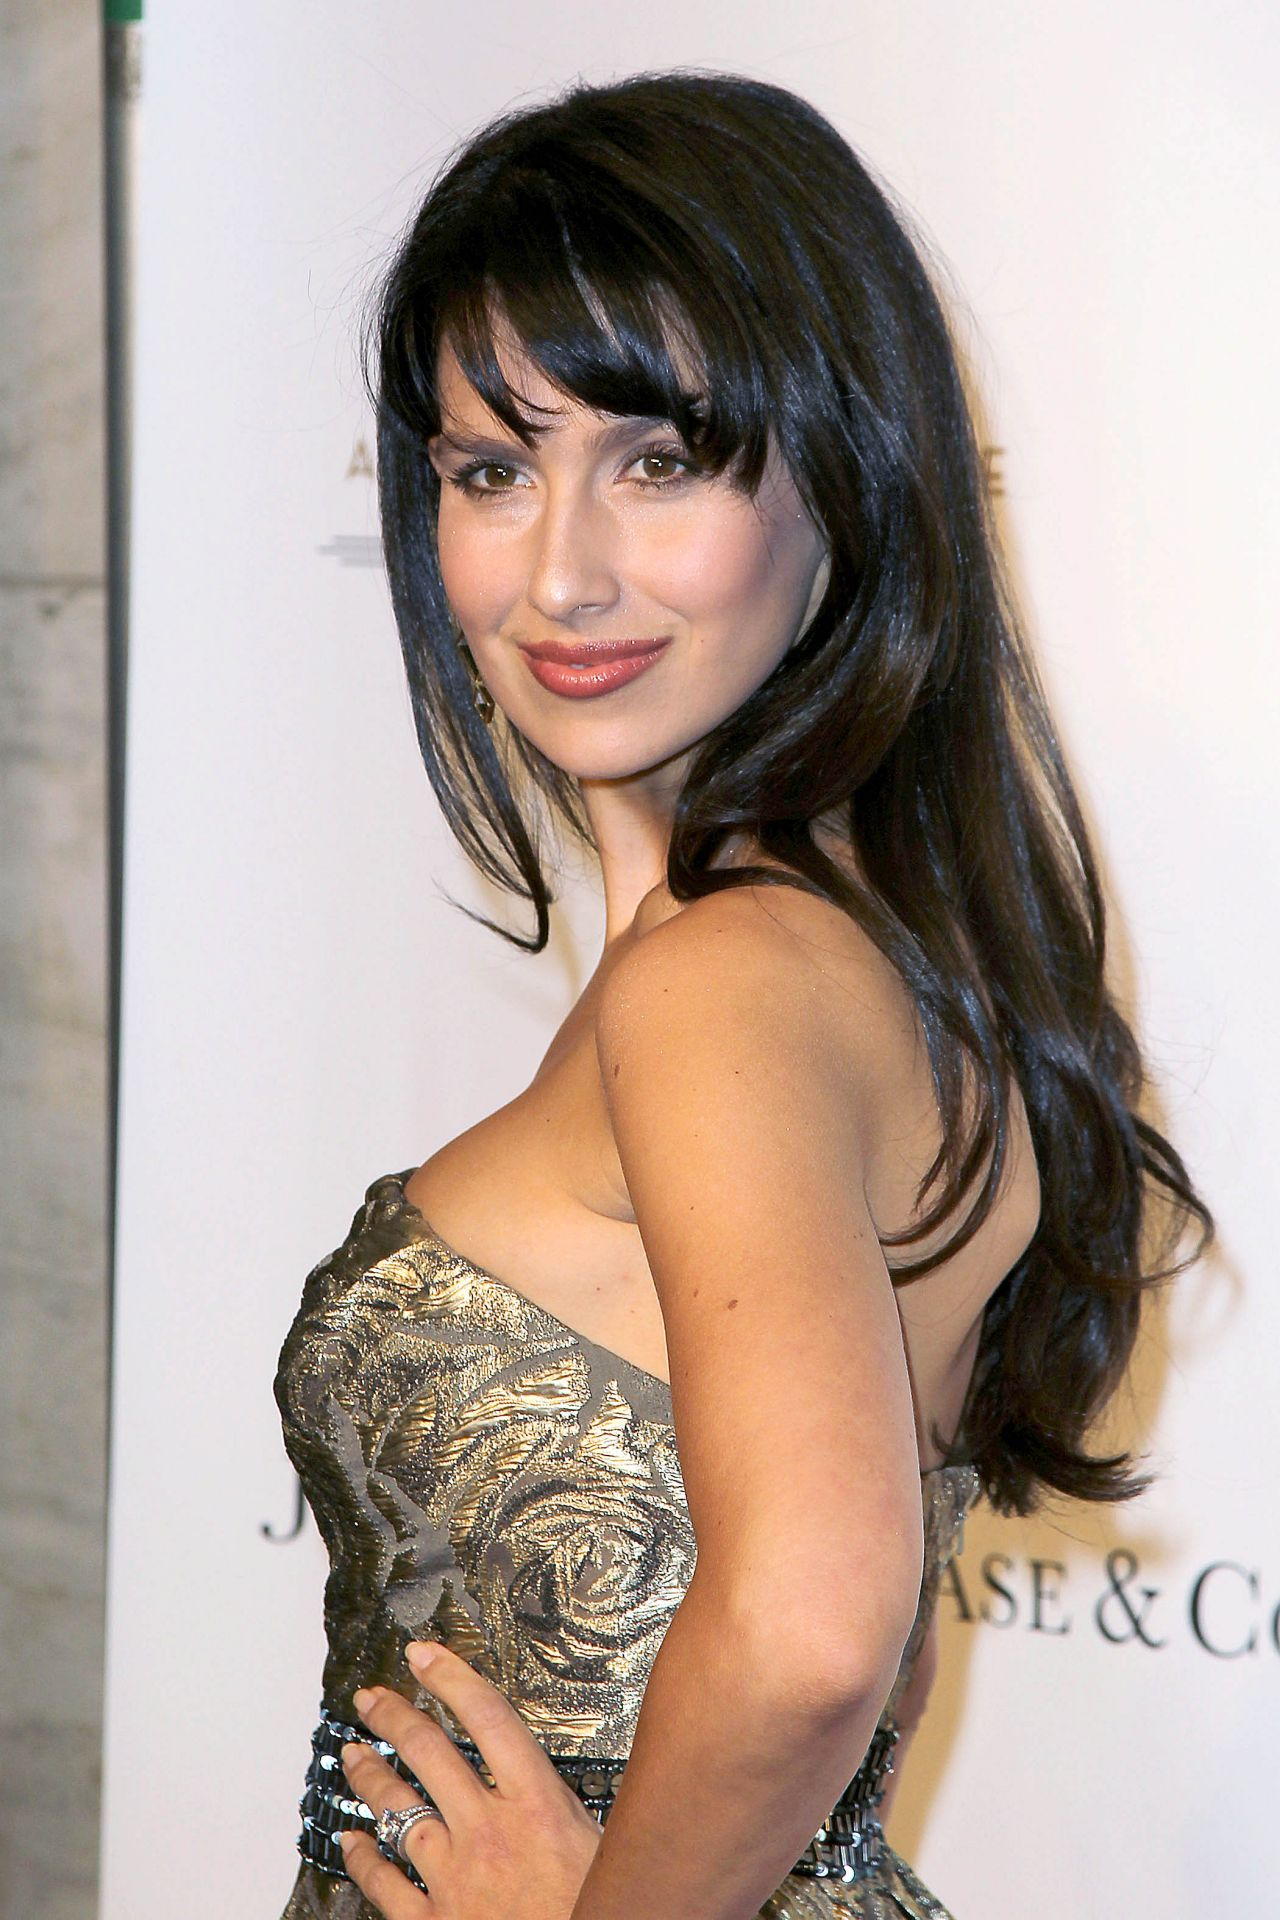 hilaria baldwin - photo #41